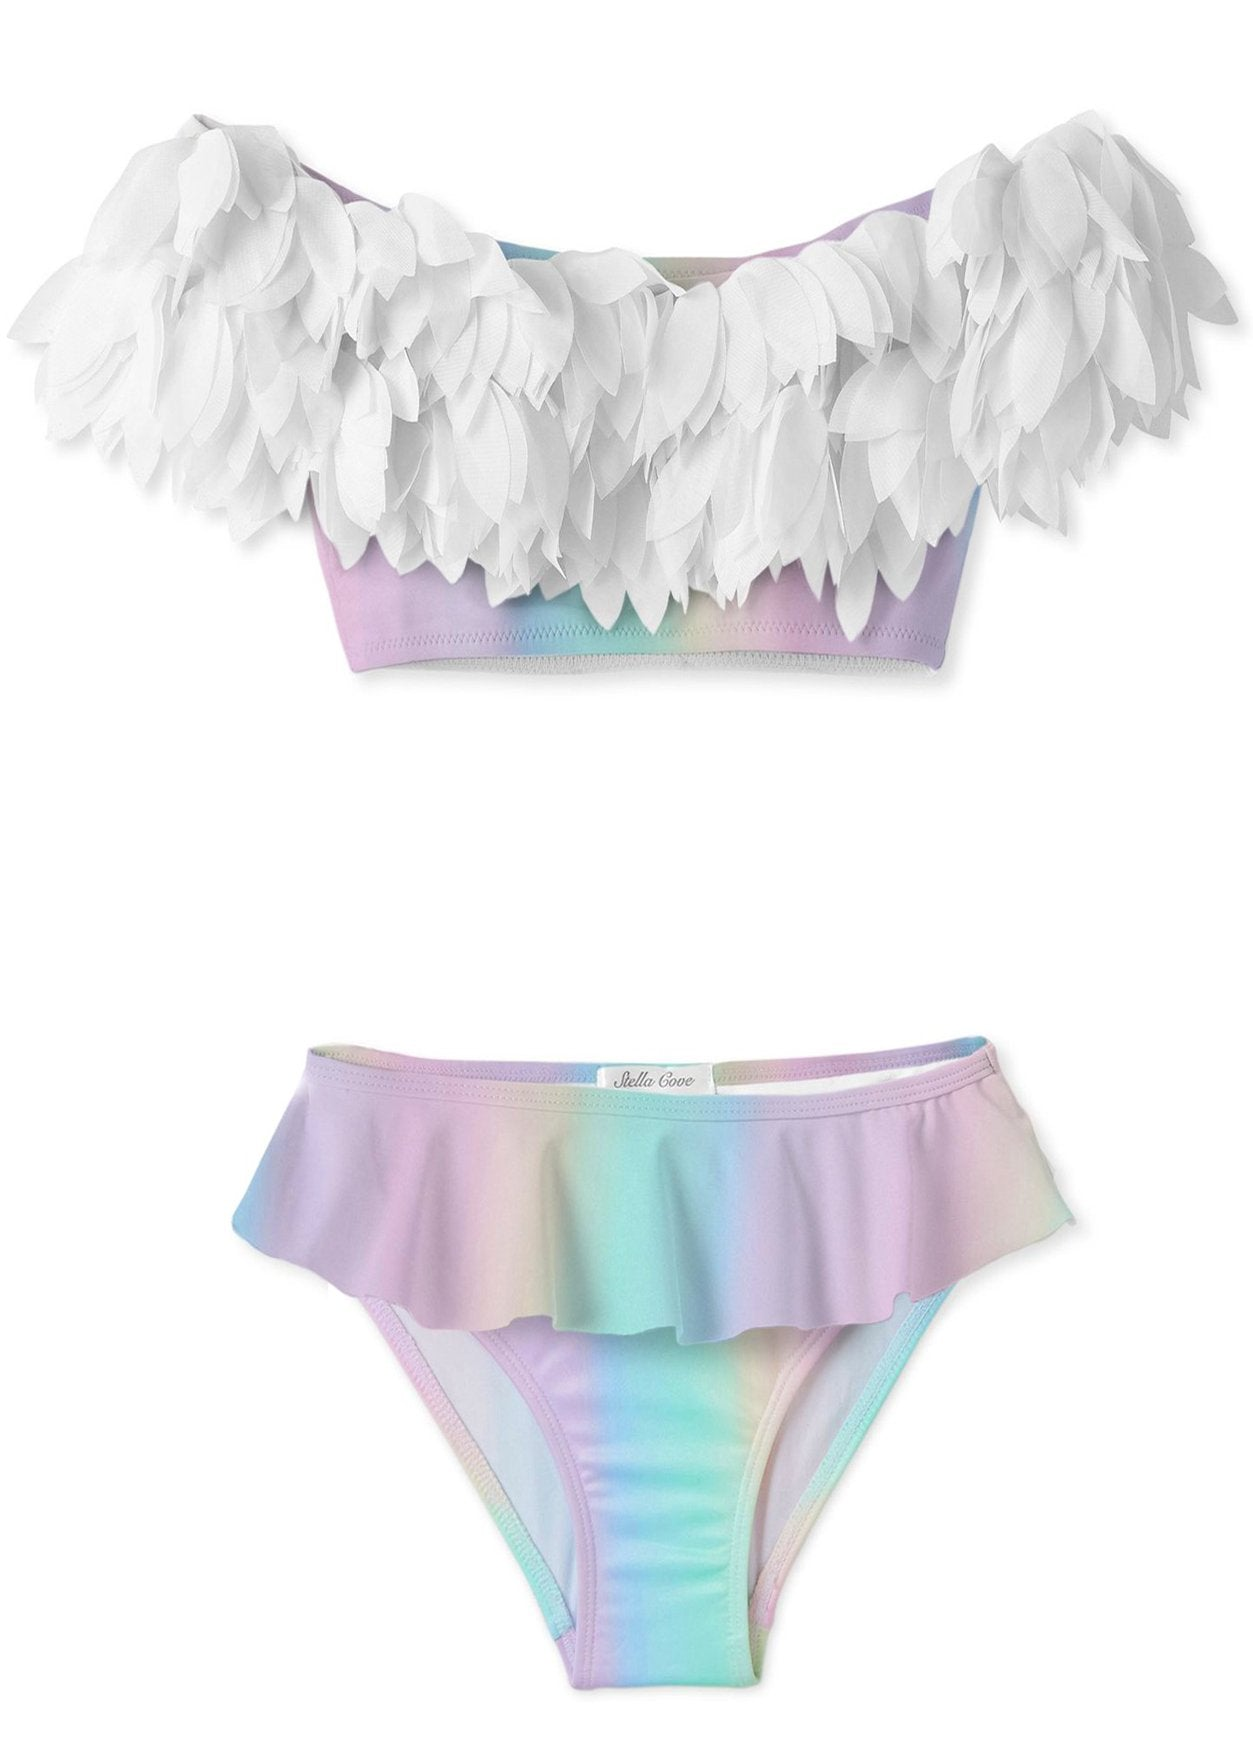 Rainbow Full Shoulder Bikini With White Petals